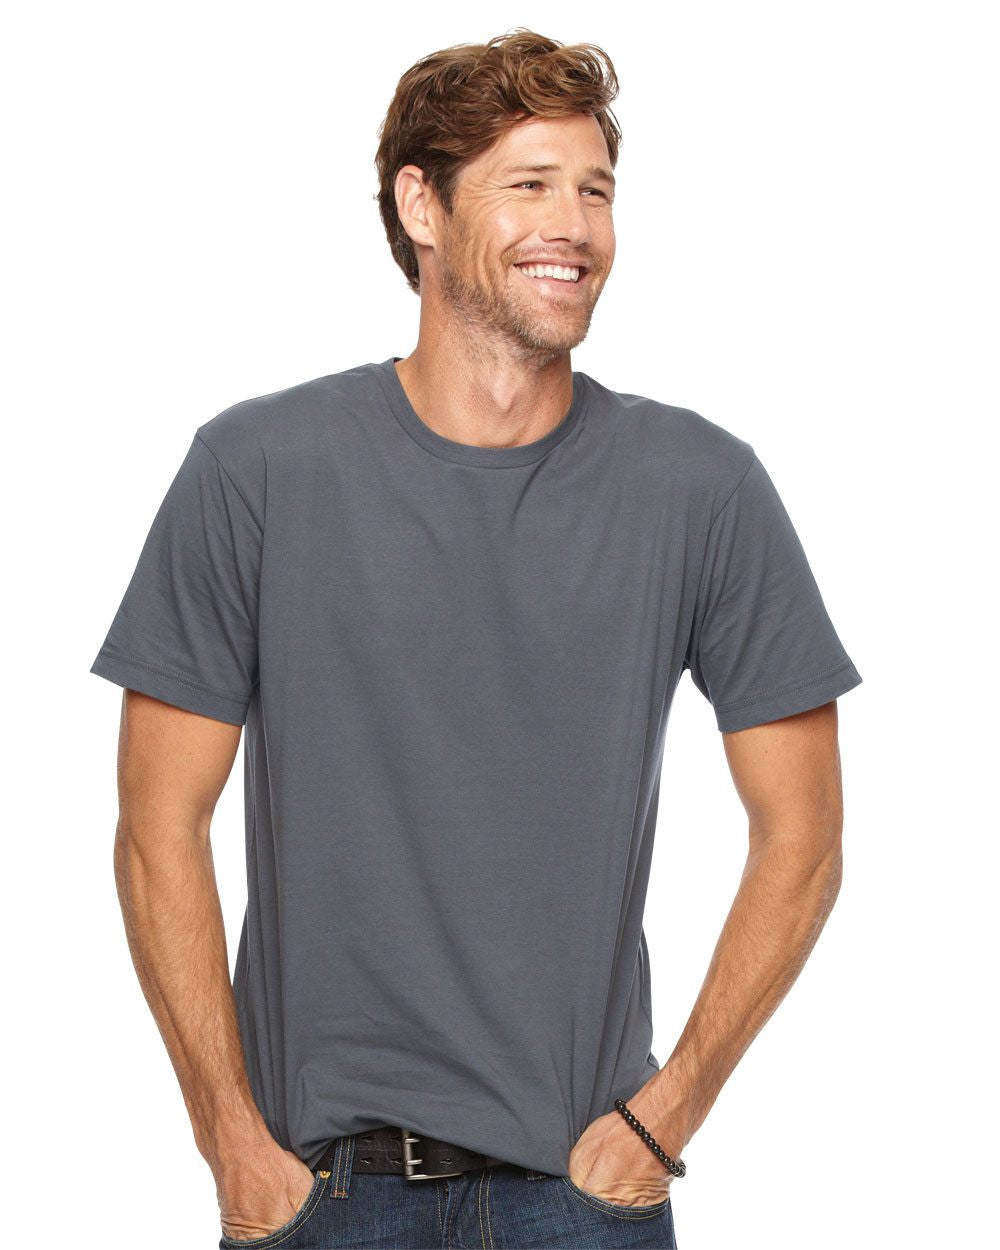 12 Pack Men's T Shirts   Assorted Colors...